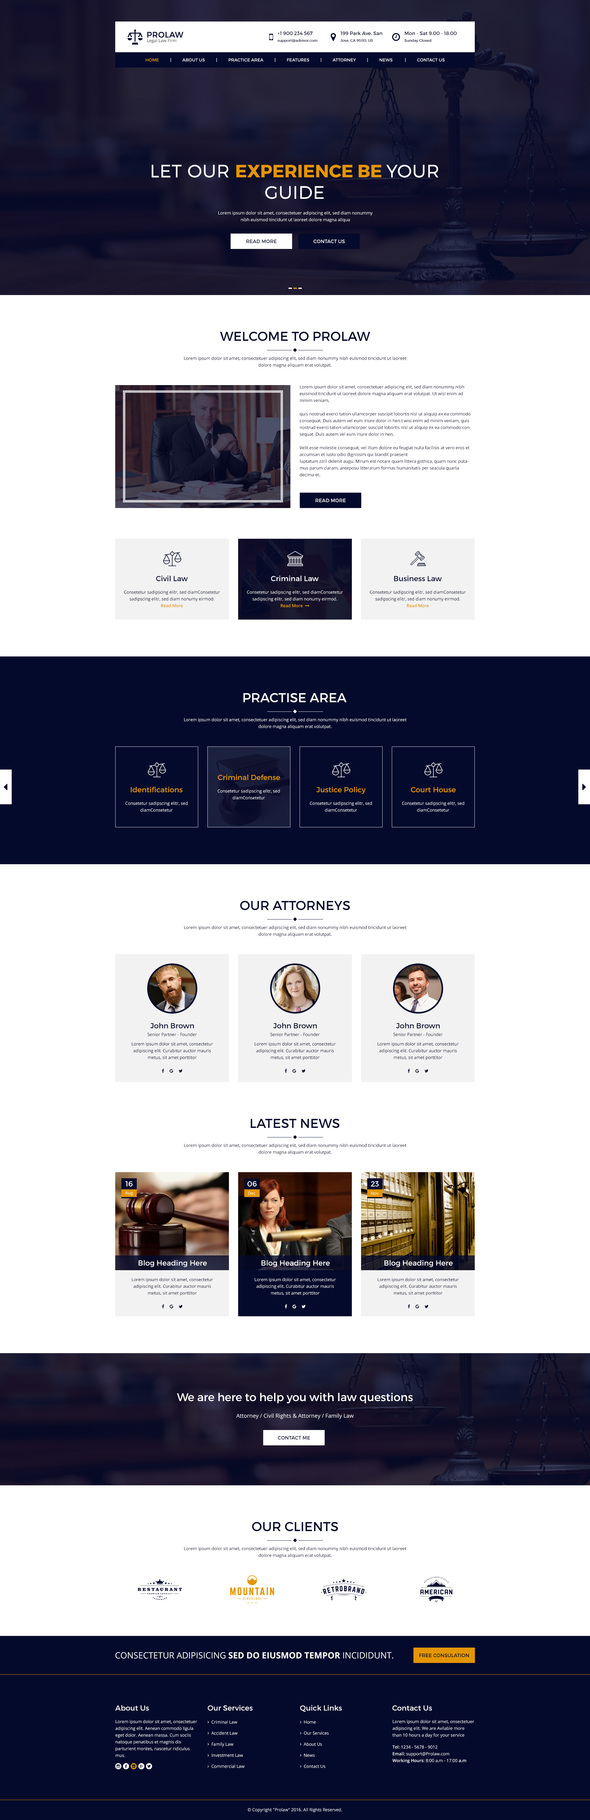 Prolaw Legal Law Firm - Attorney PSD Templates